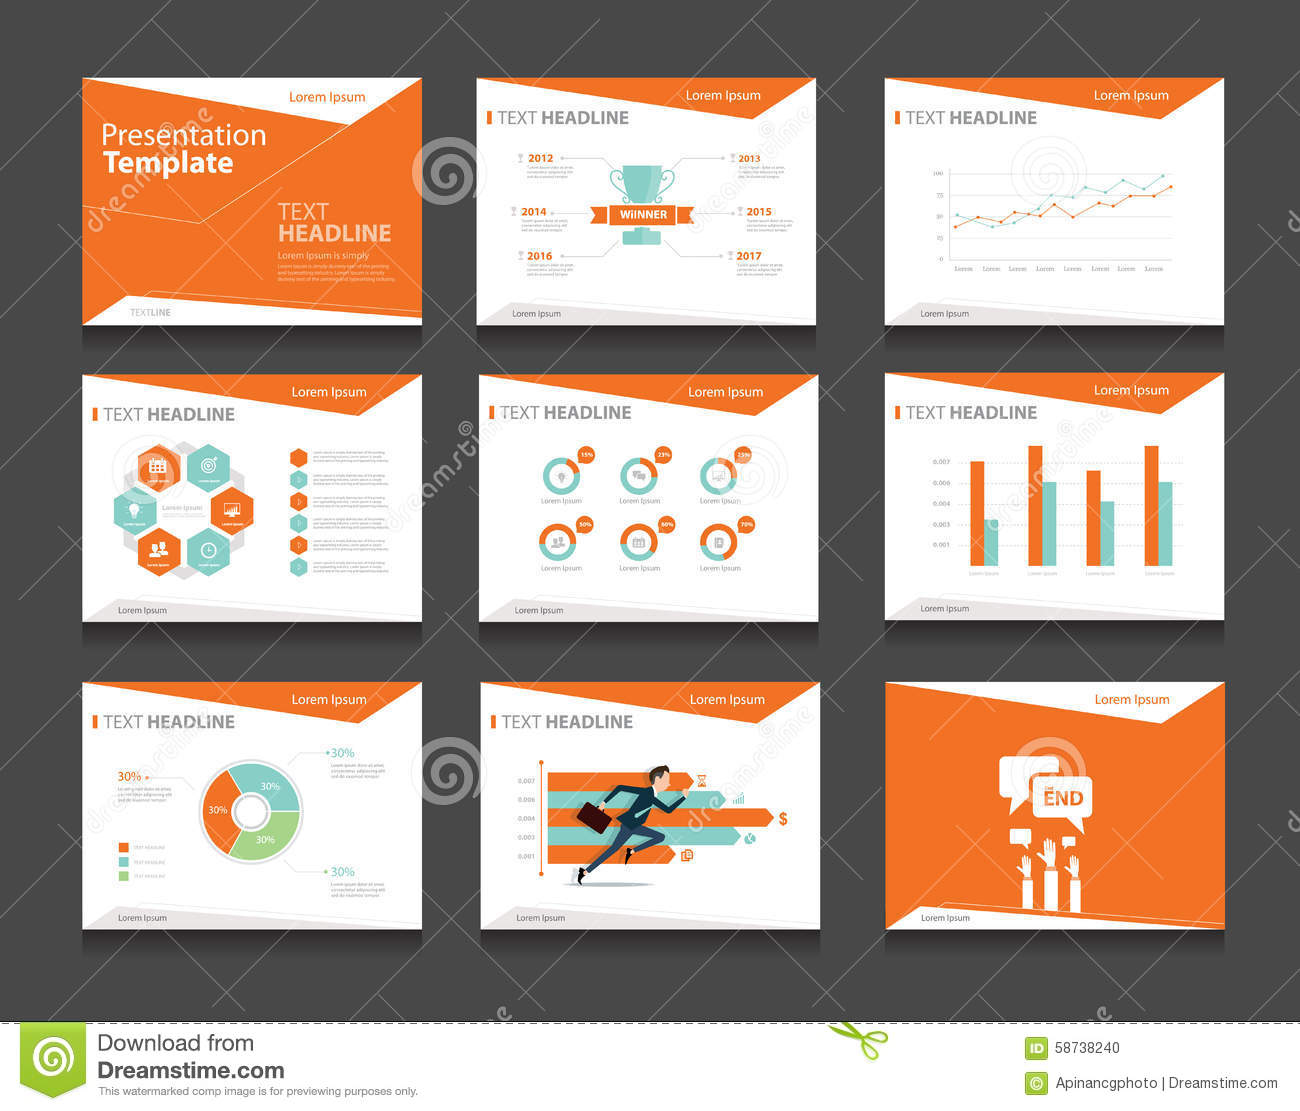 Business powerpoint presentation templates kubreforic business powerpoint presentation templates accmission Images